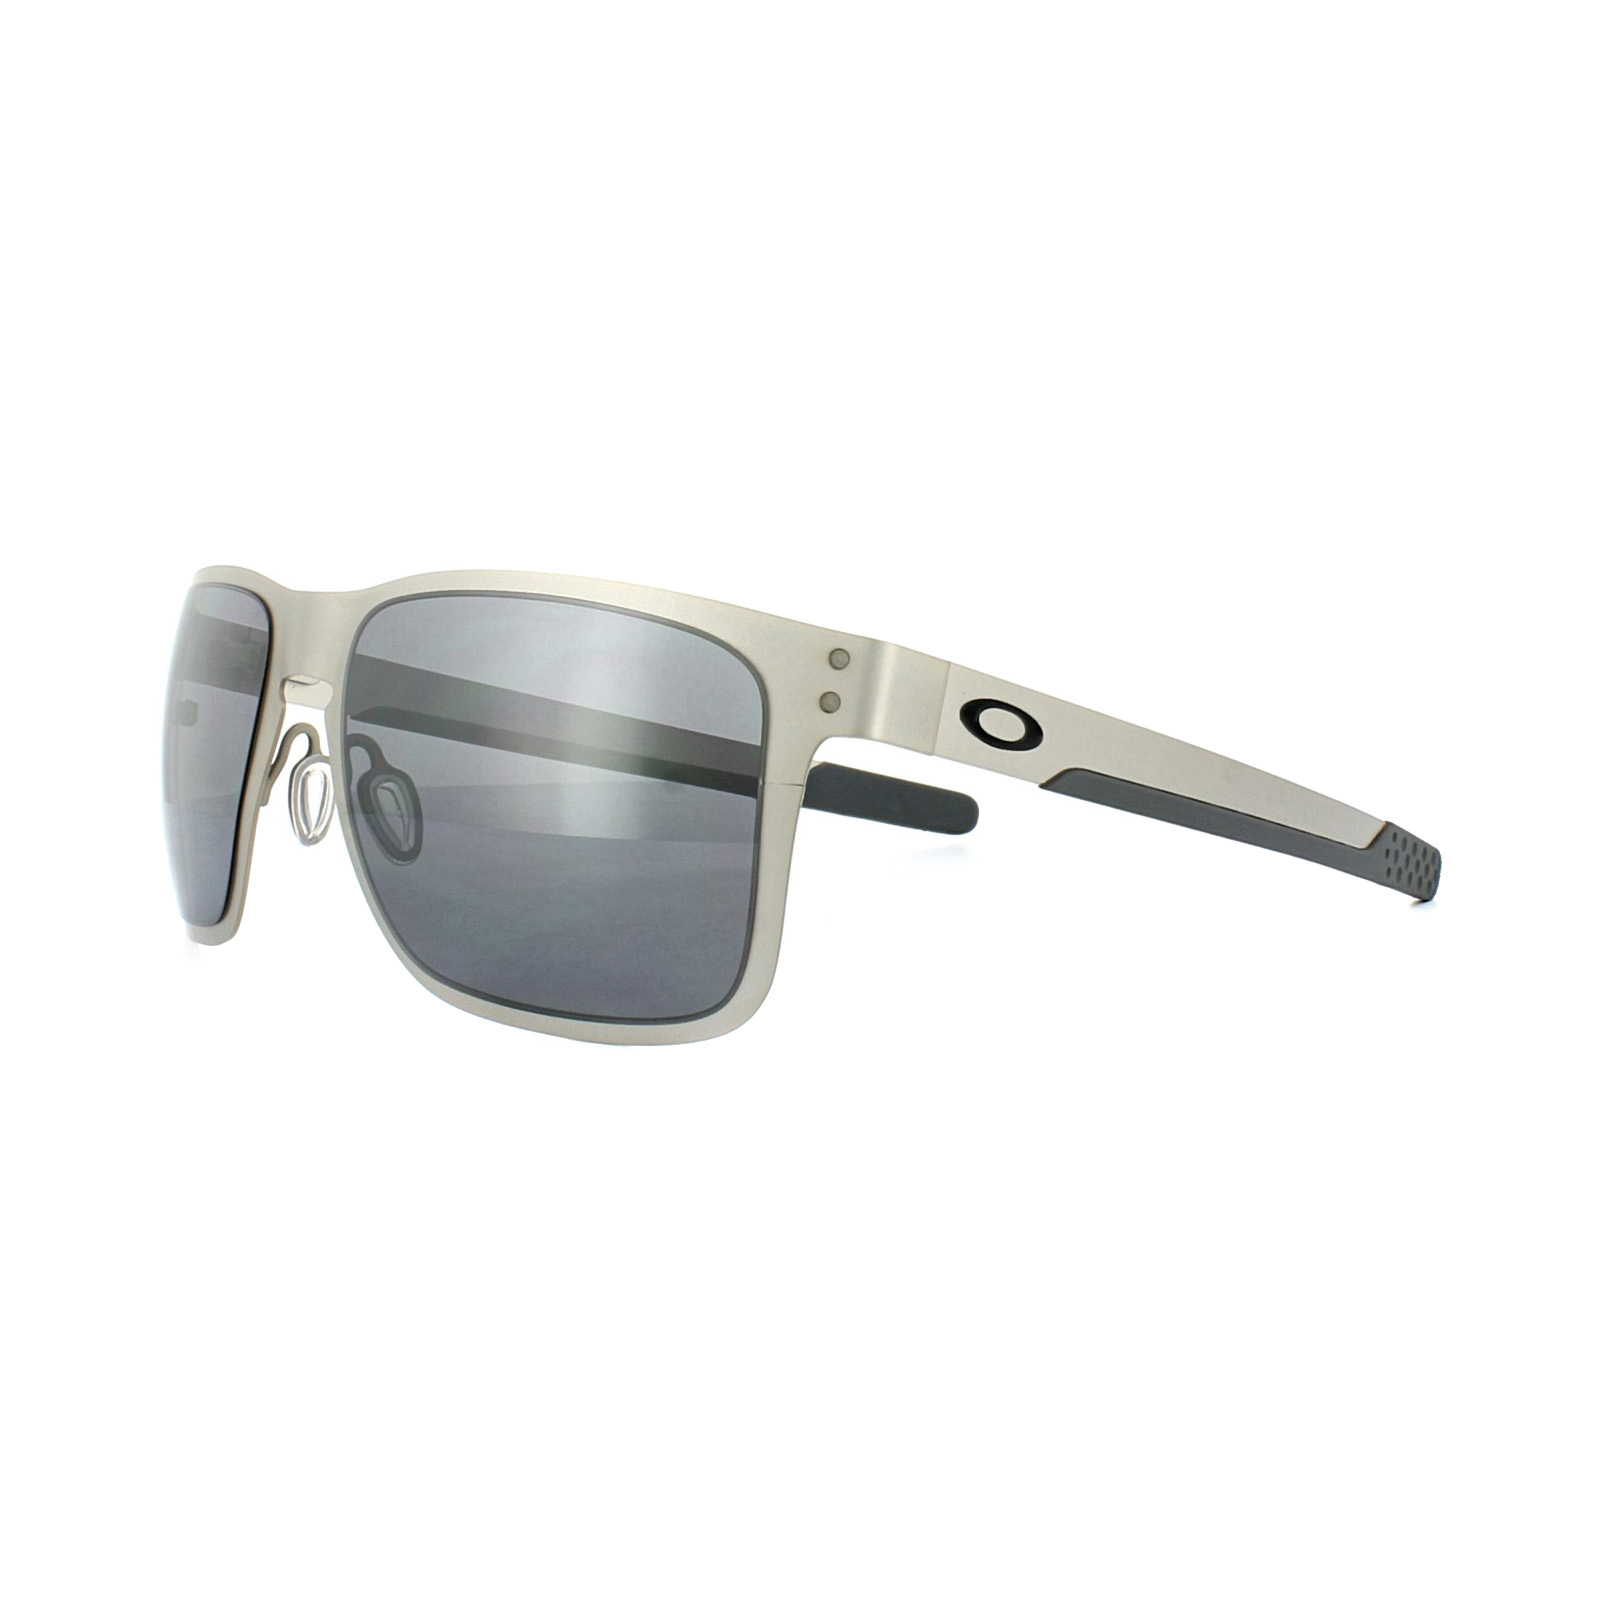 c4d71e31d94 Sentinel Oakley Sunglasses Holbrook Metal OO4123-03 Satin Chrome Black  Iridium